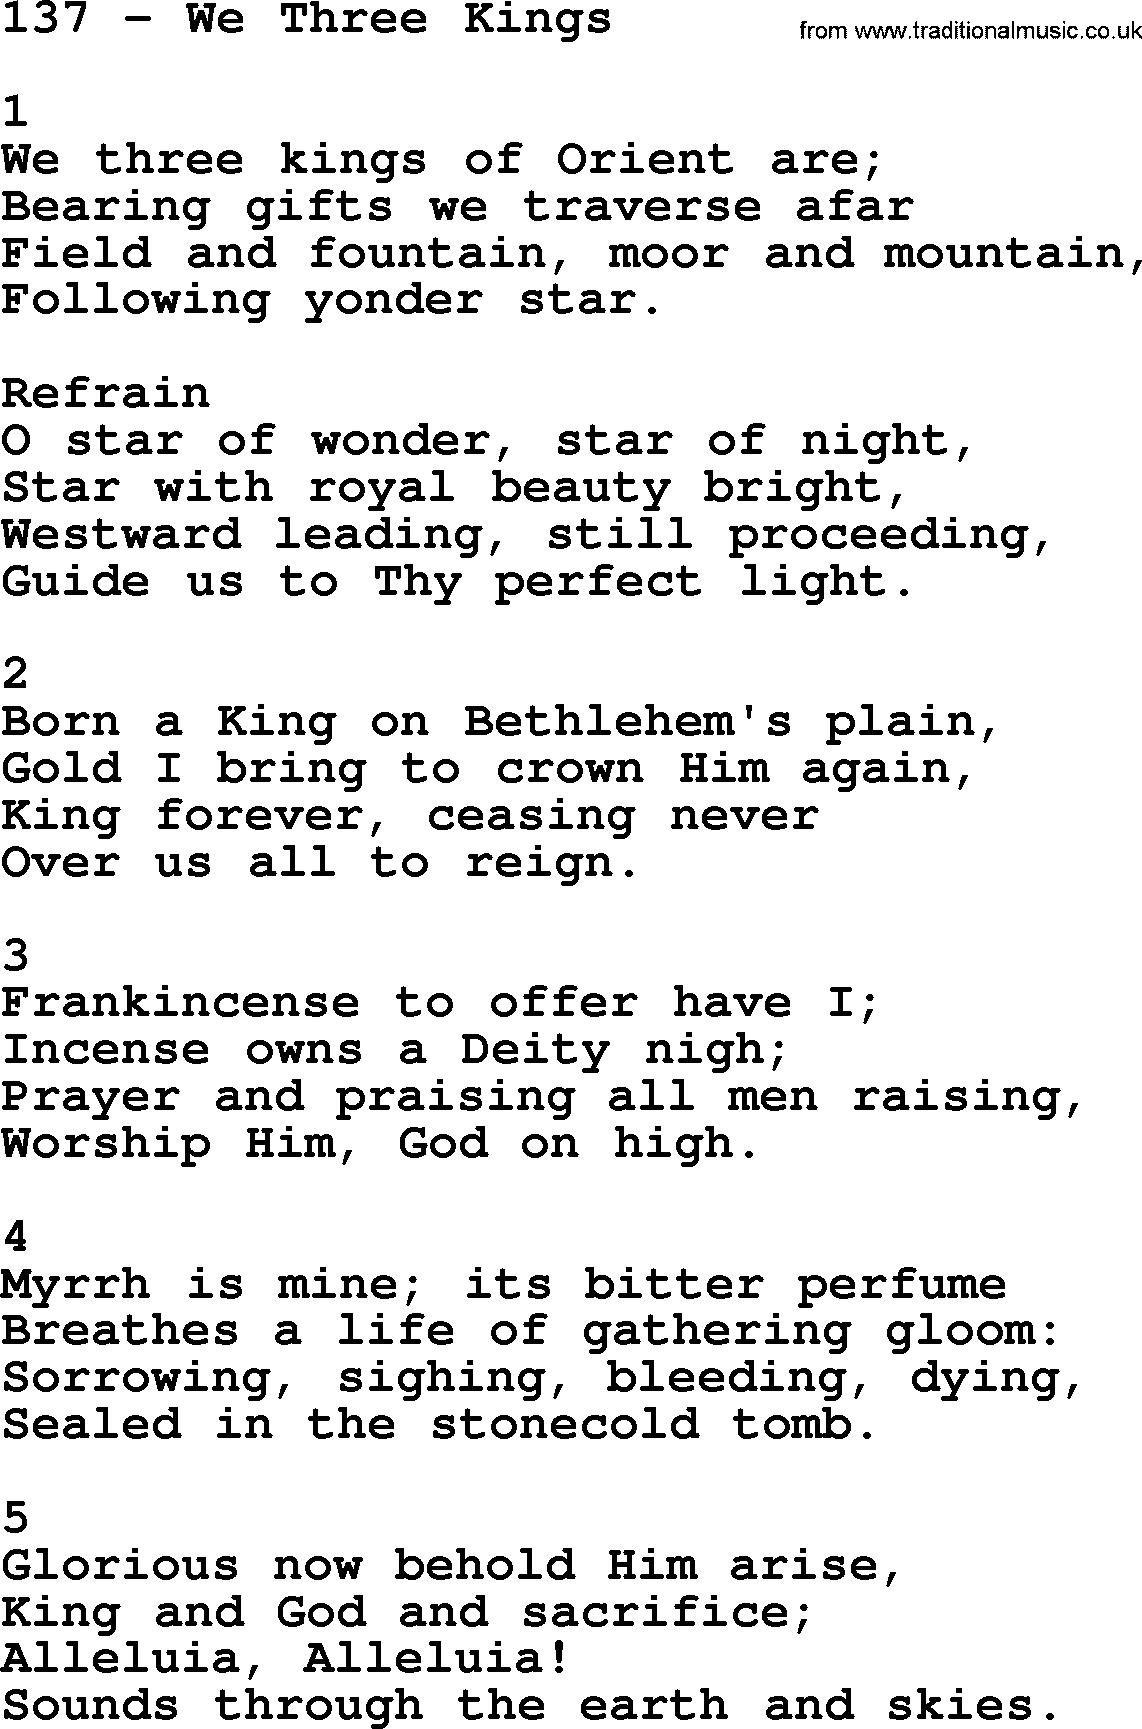 Adventist Hymnal, Song: 137-We Three Kings, with Lyrics, PPT